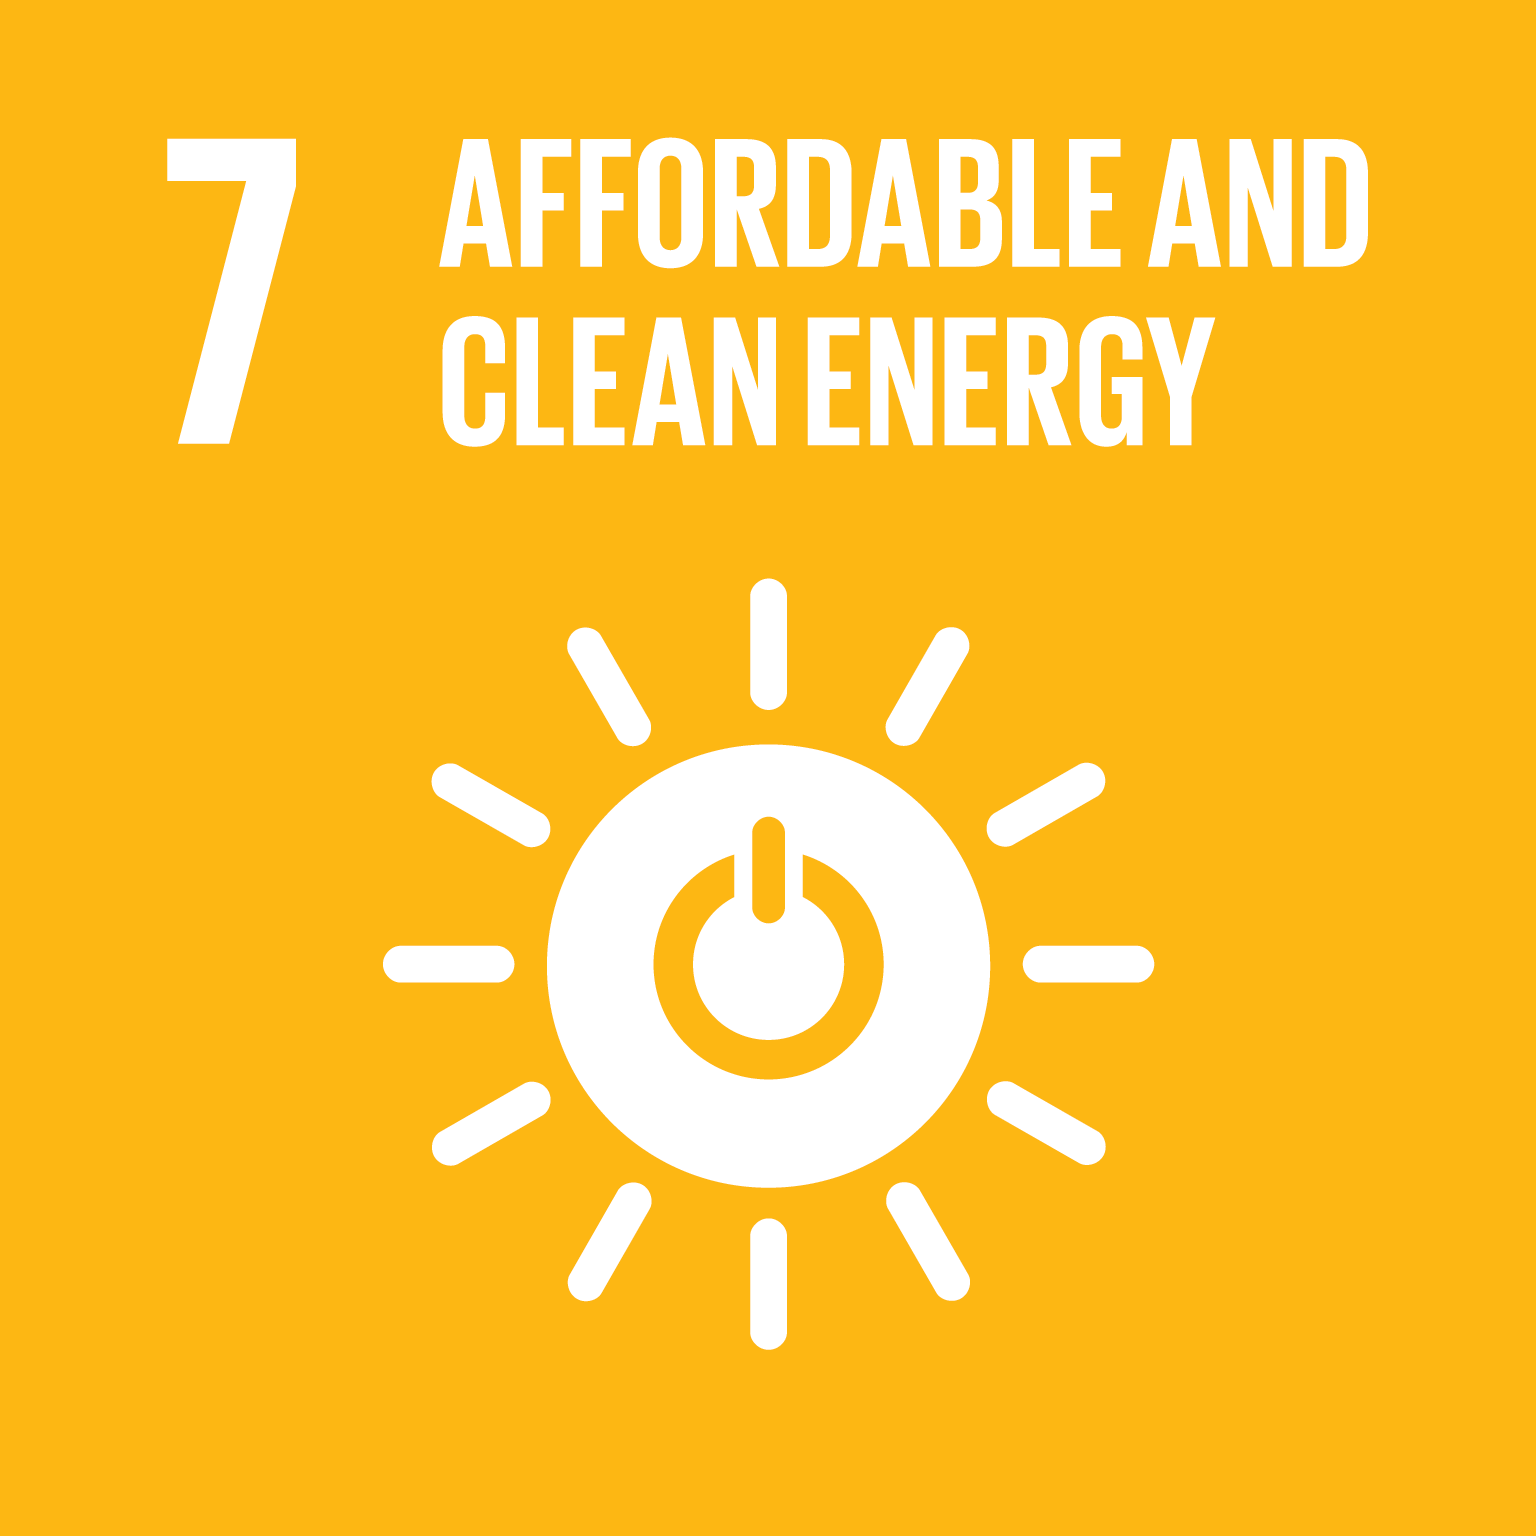 Goal 7 | Department of Economic and Social Affairs